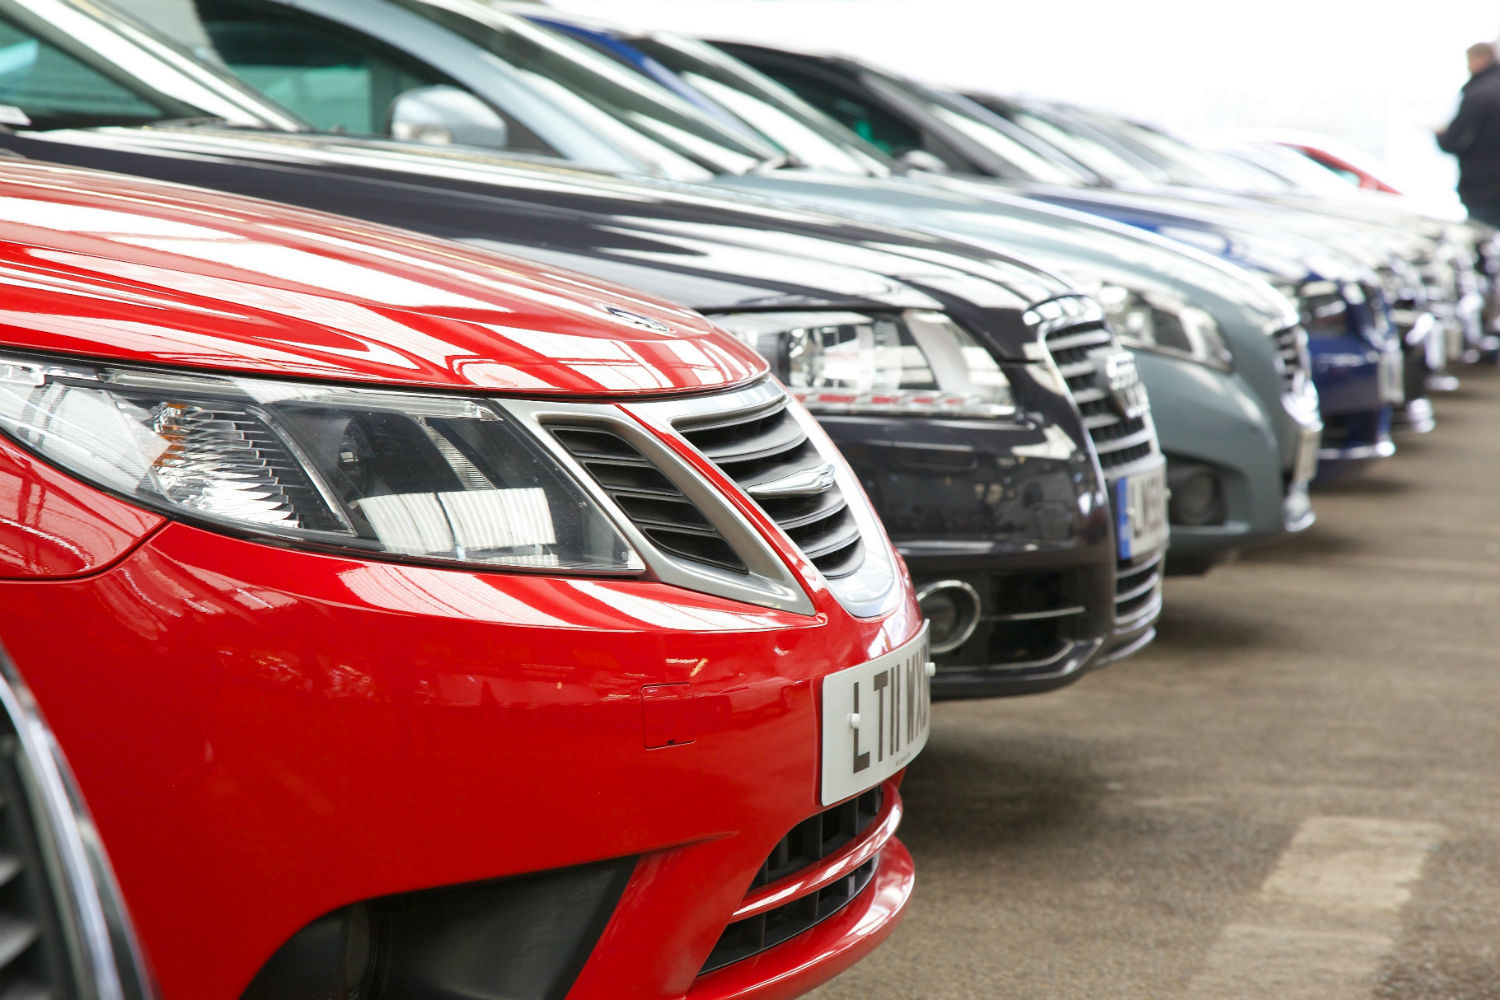 Wholesale and Retail vehicles for sale